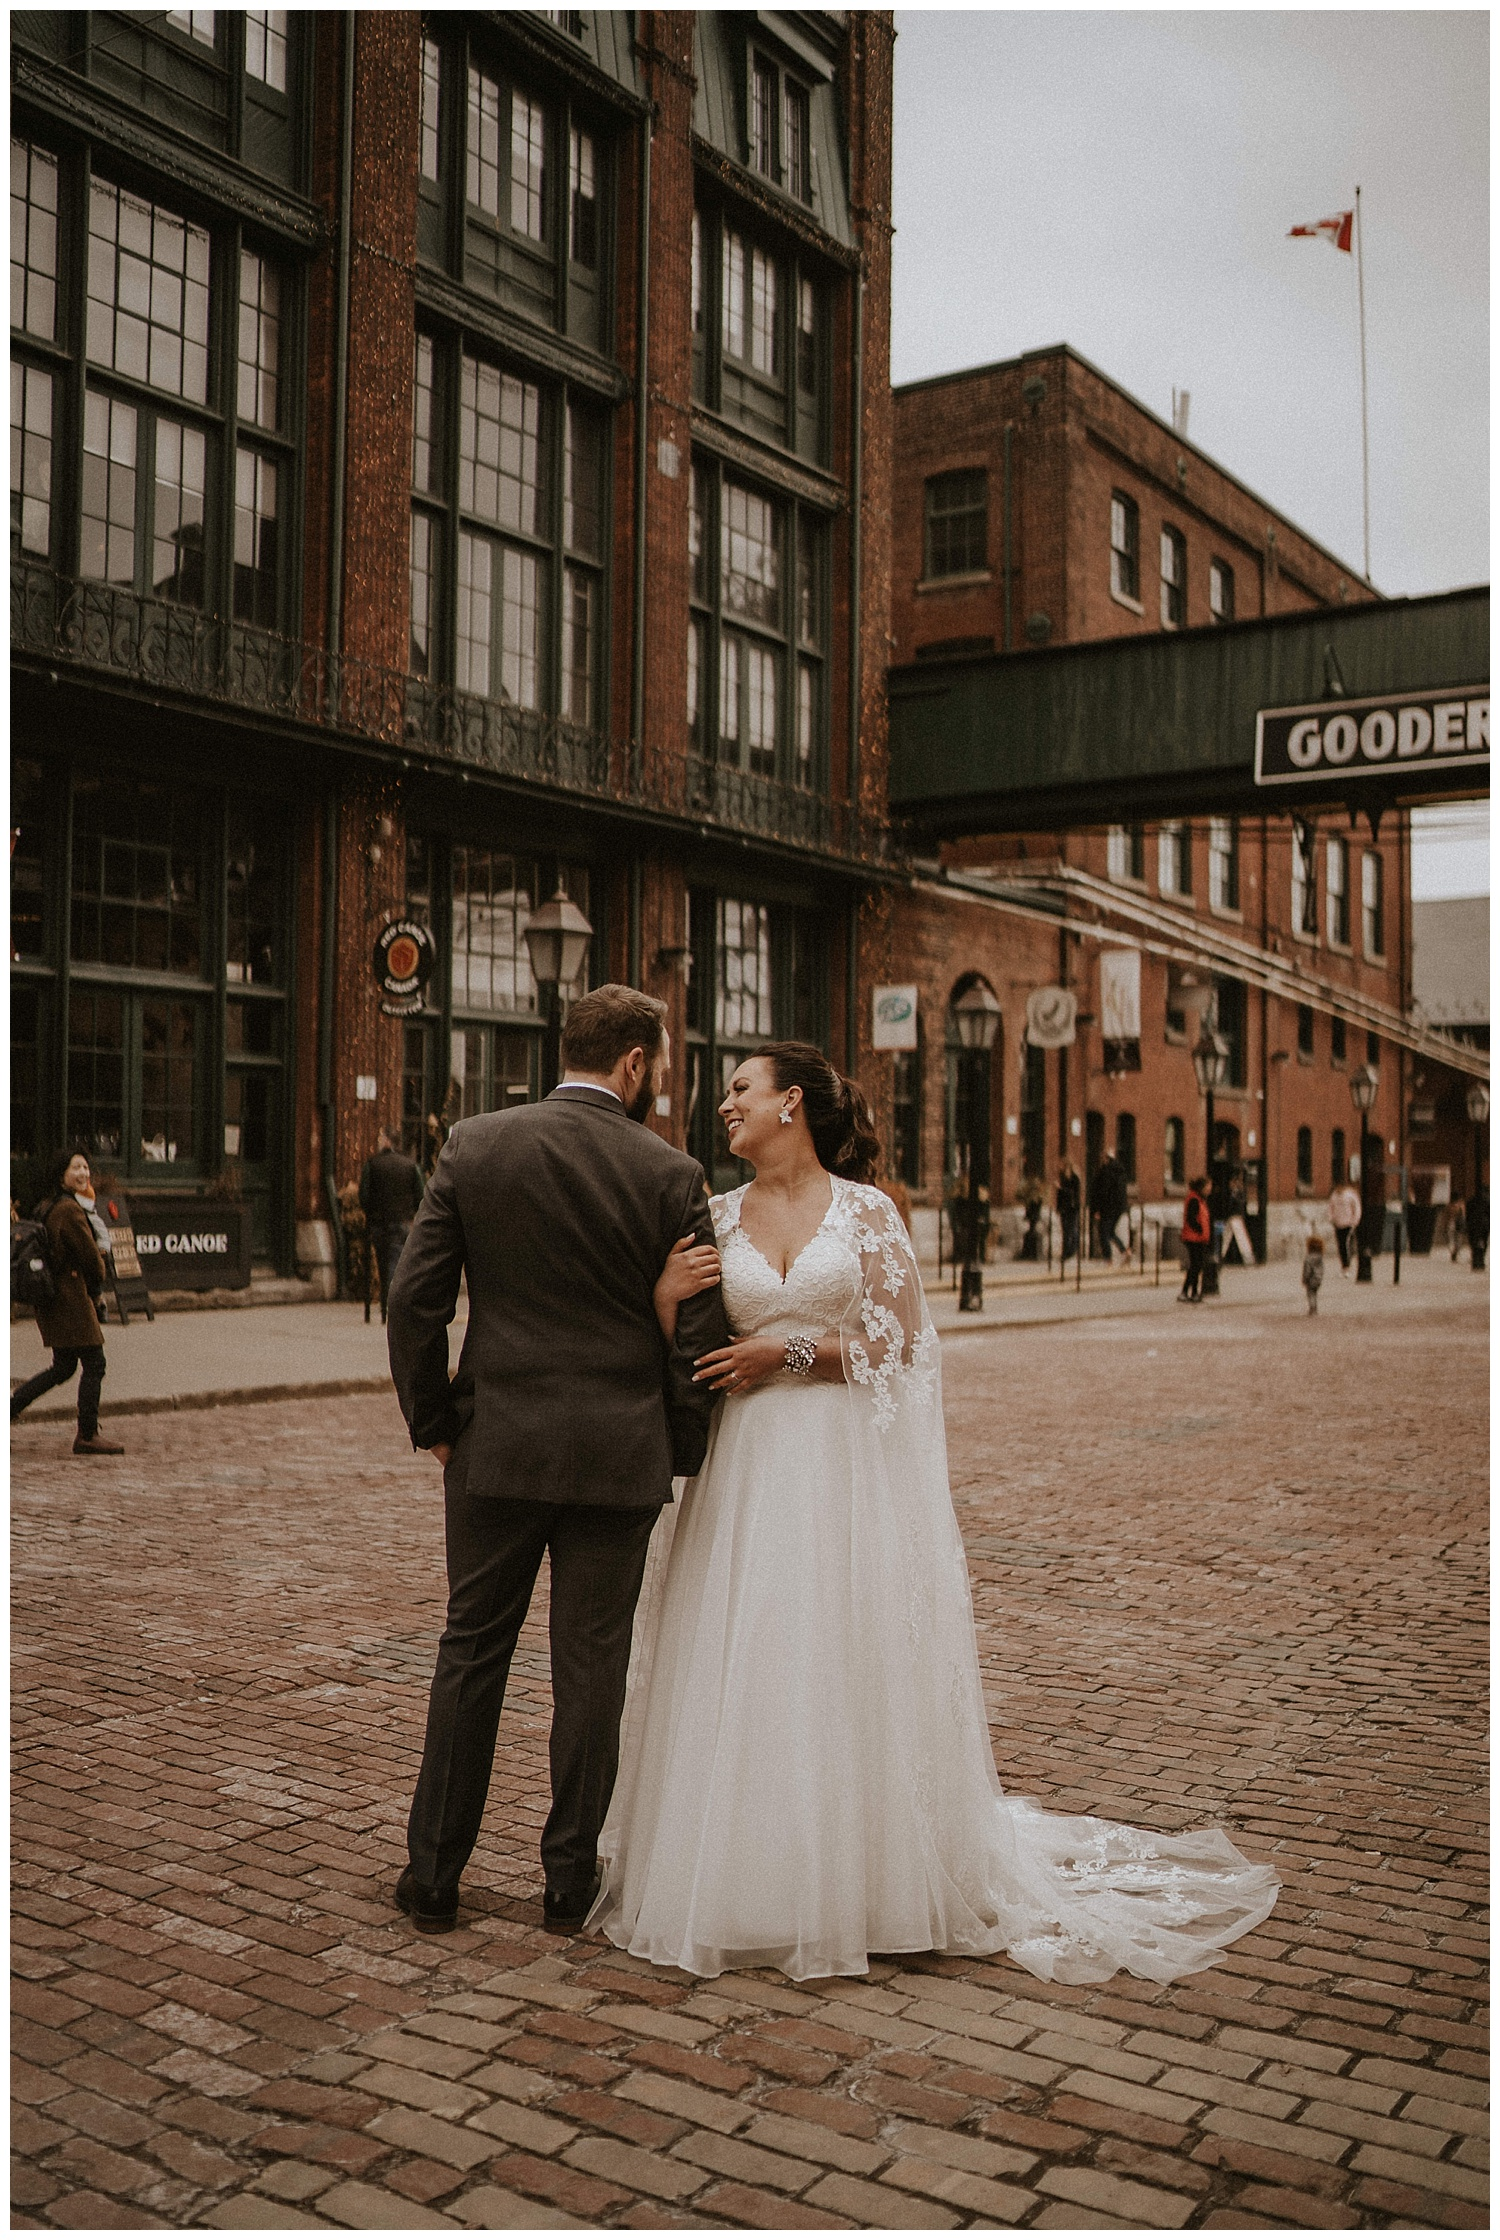 Katie Marie Photography | Archeo Wedding Arta Gallery Wedding | Distillery District Wedding | Toronto Wedding Photographer | Hamilton Toronto Ontario Wedding Photographer |_0082.jpg